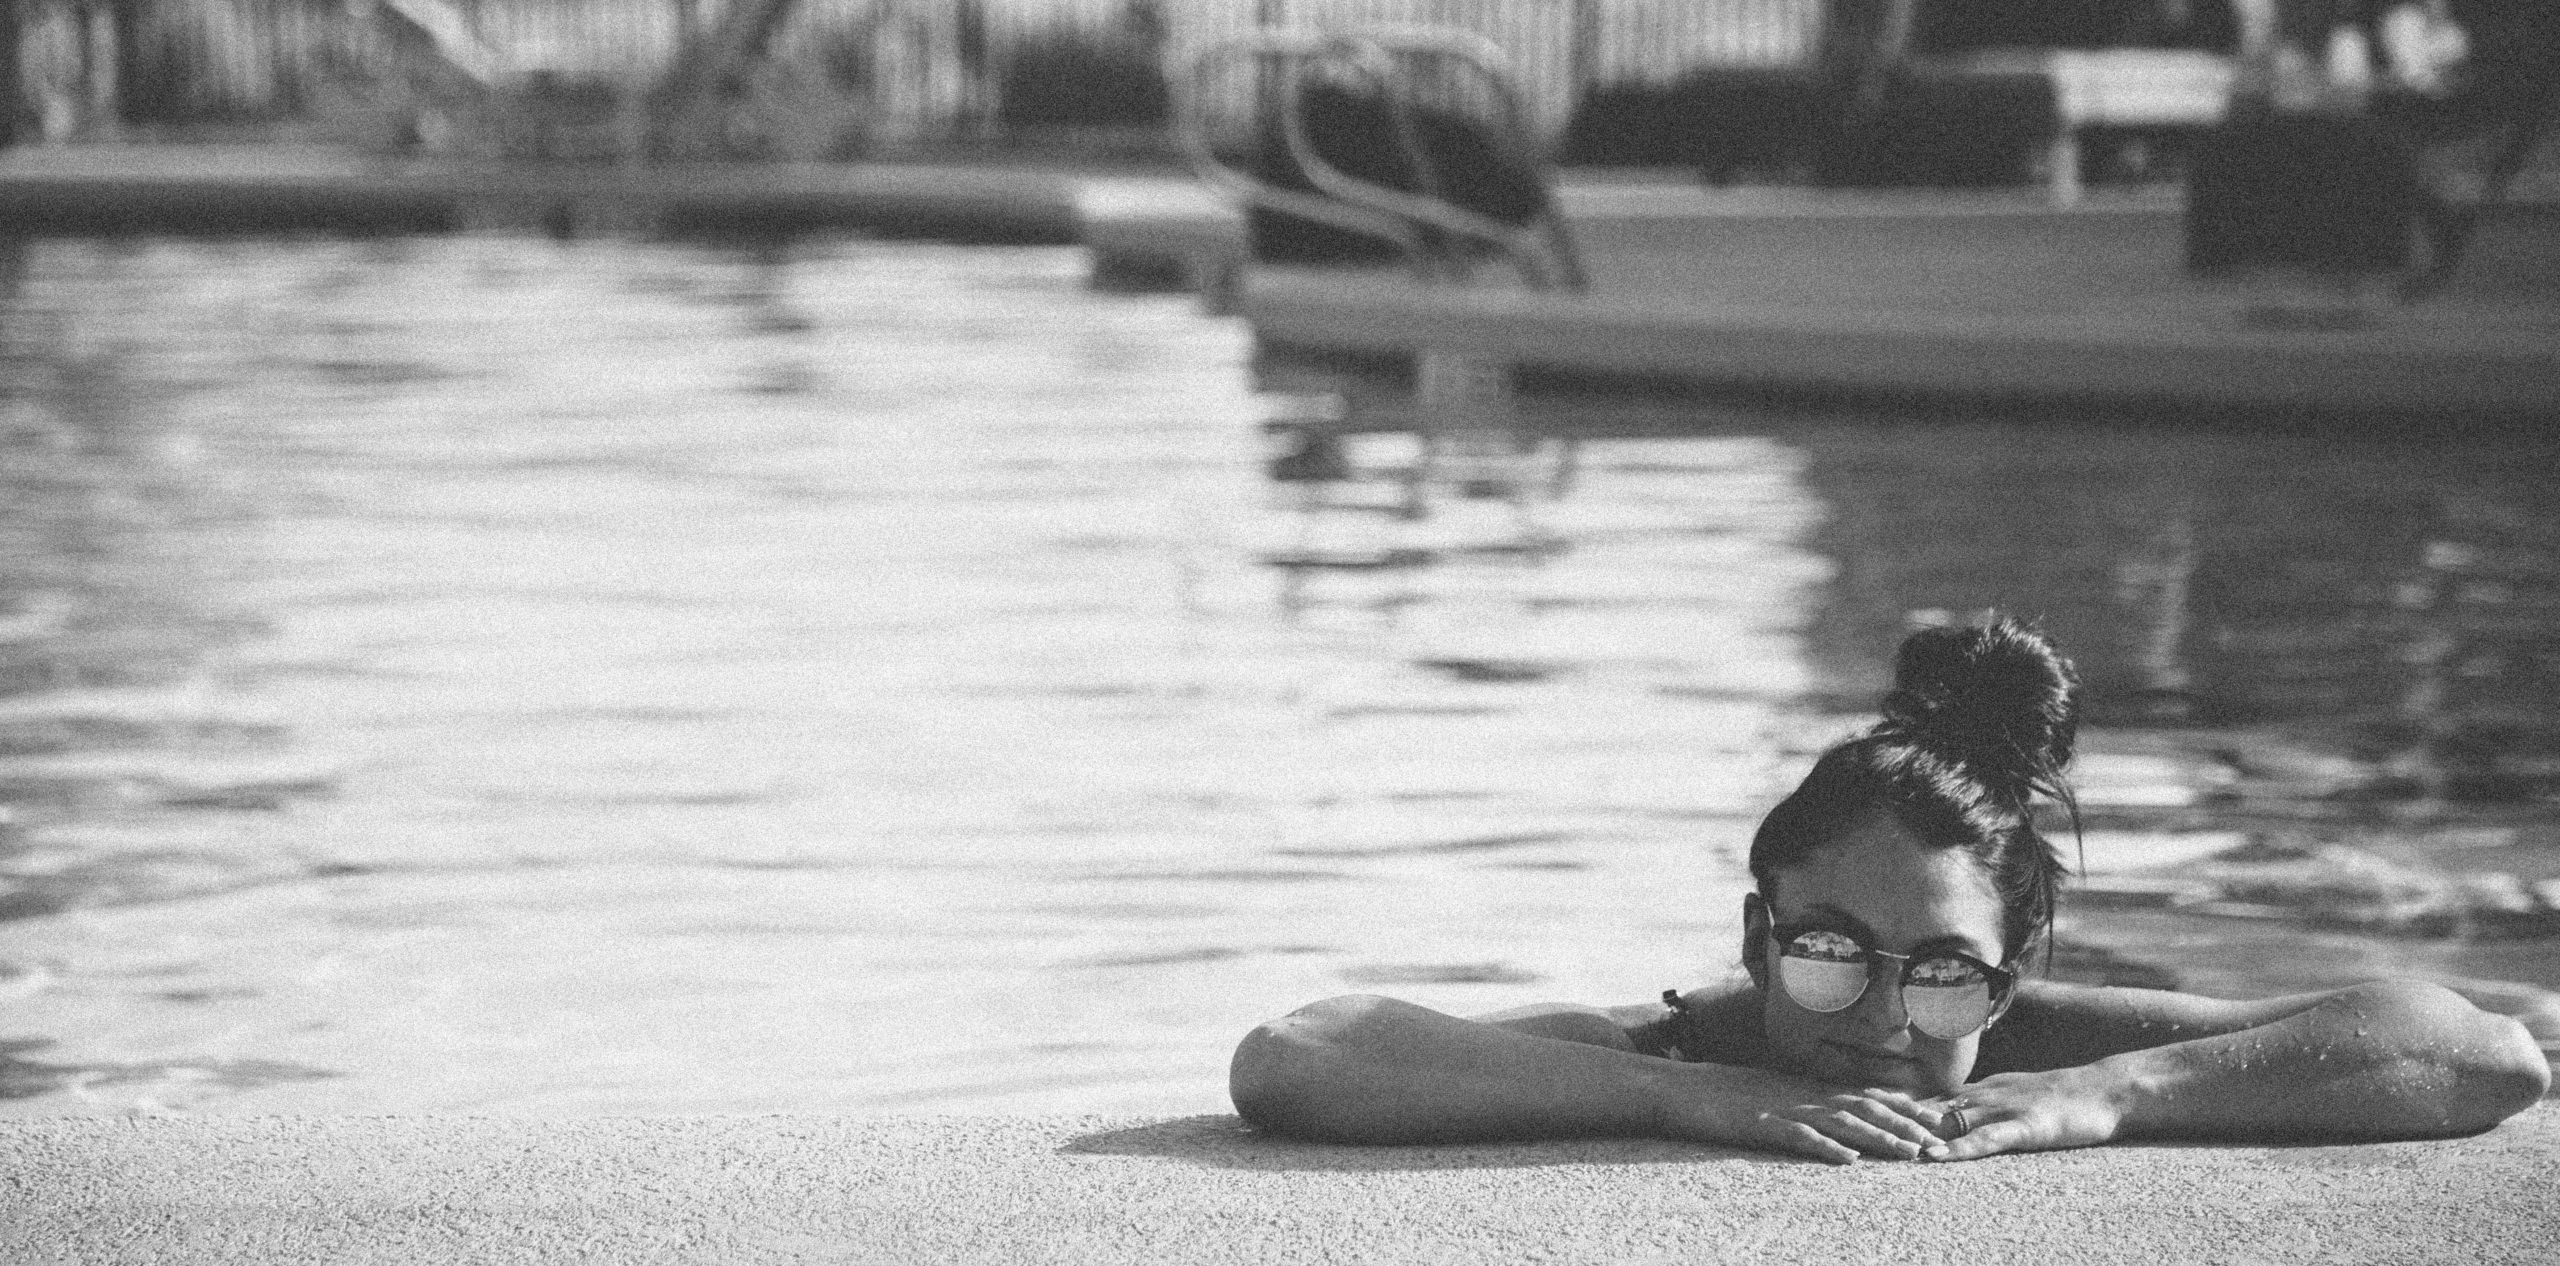 girl looking over the edge of a pool wearing sunglasses-live life to the fullest